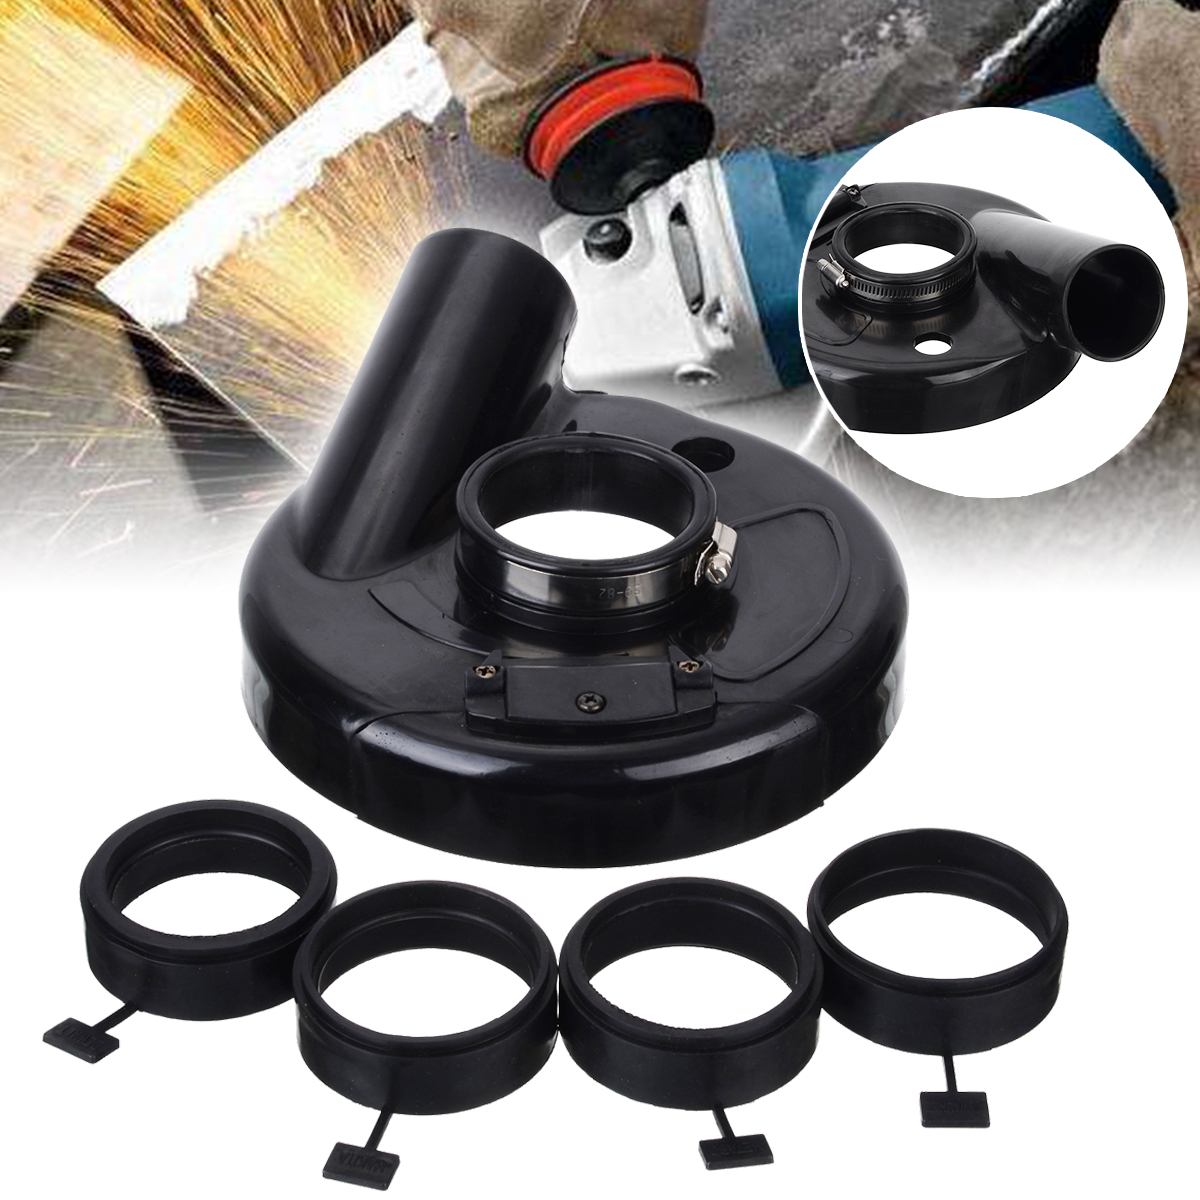 """Vacuum Dust Shroud Grinder Grinding Dust Cover for 7"""" Angle Grinder Hand Grinding Power Tool Accessory"""